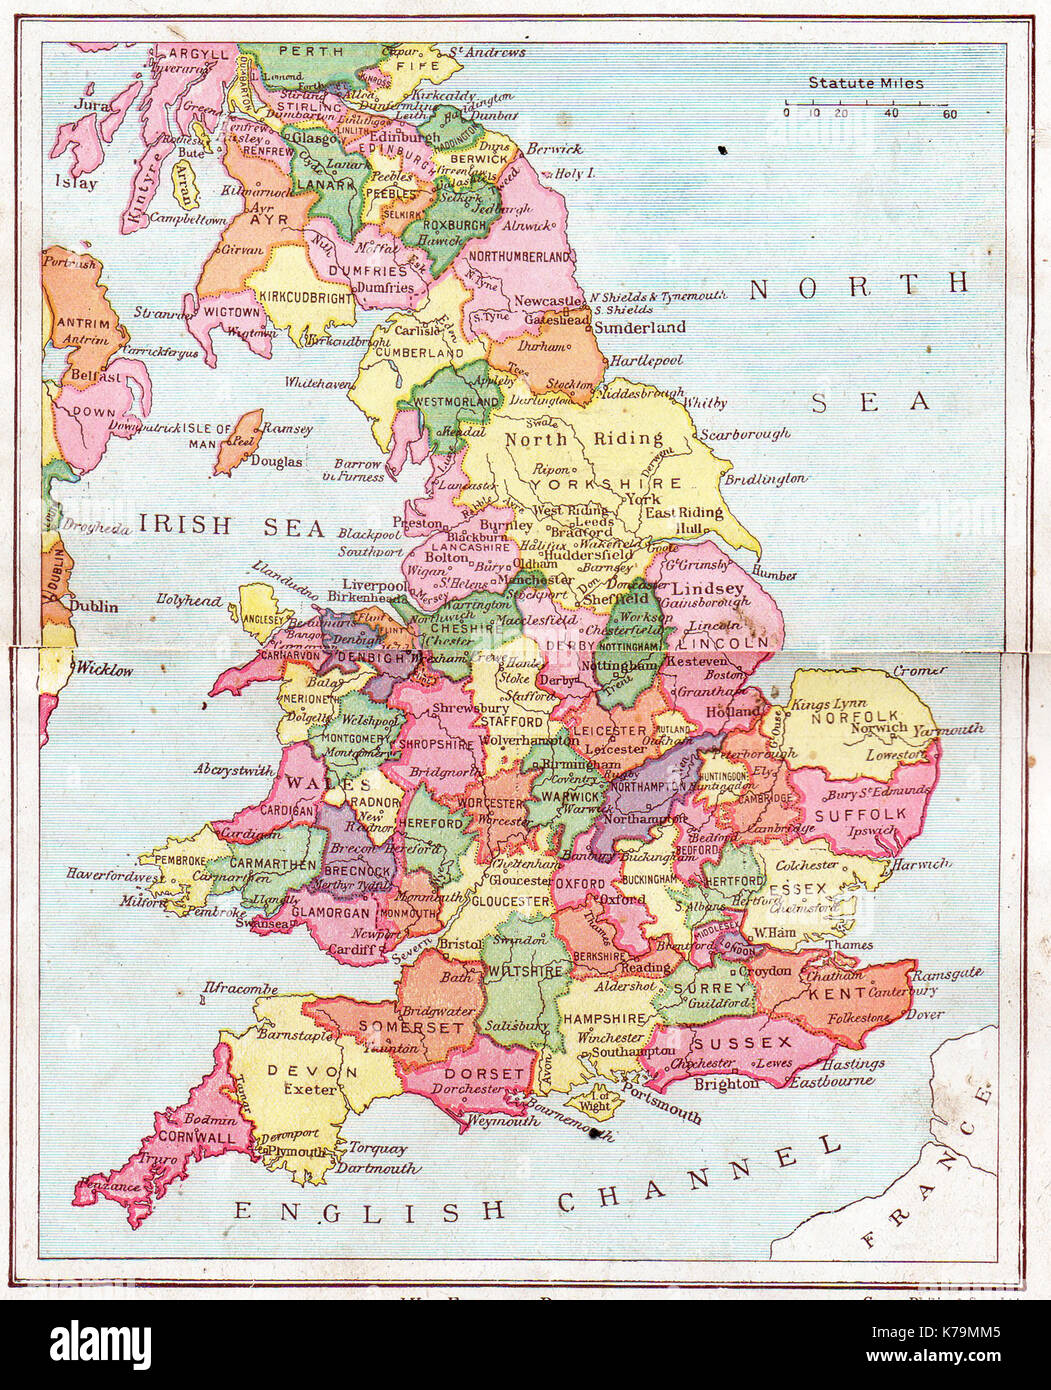 Map Of England Political.1914 Map Of England Political Southern Scotland Stock Photo